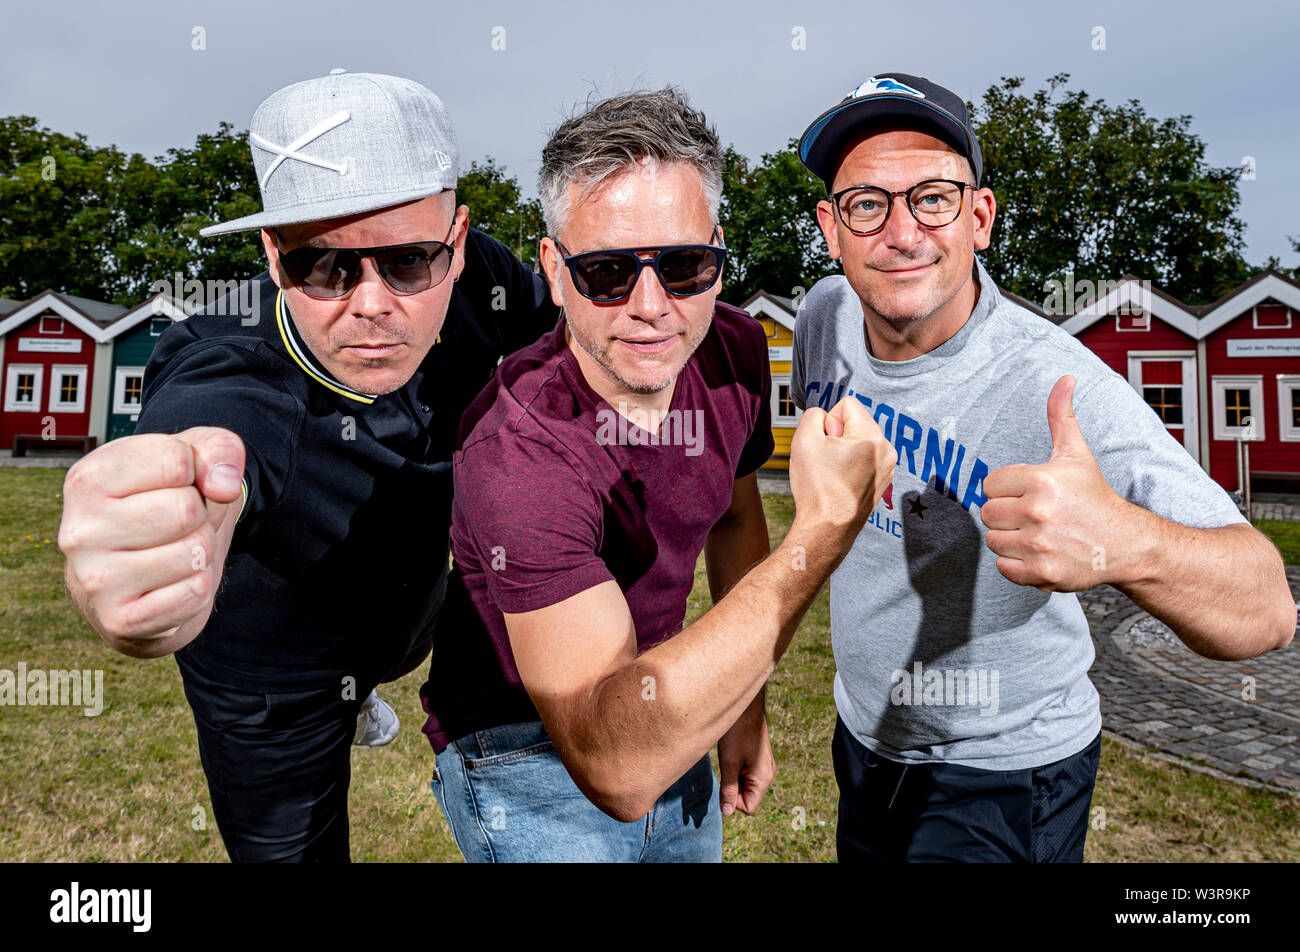 Helgoland, Germany. 17th July, 2019. The hip-hop band Fettes Brot, Boris Lauterbach alias 'König Boris' (l-r), Martin Vandreier alias 'Doktor Renz' and Björn Warns alias 'Björn Beton', are standing on a meadow on the island of Helgoland on the day of their concert. 700 visitors are expected in the sold out Nordseehalle. Credit: Axel Heimken/dpa/Alamy Live News - Stock Image